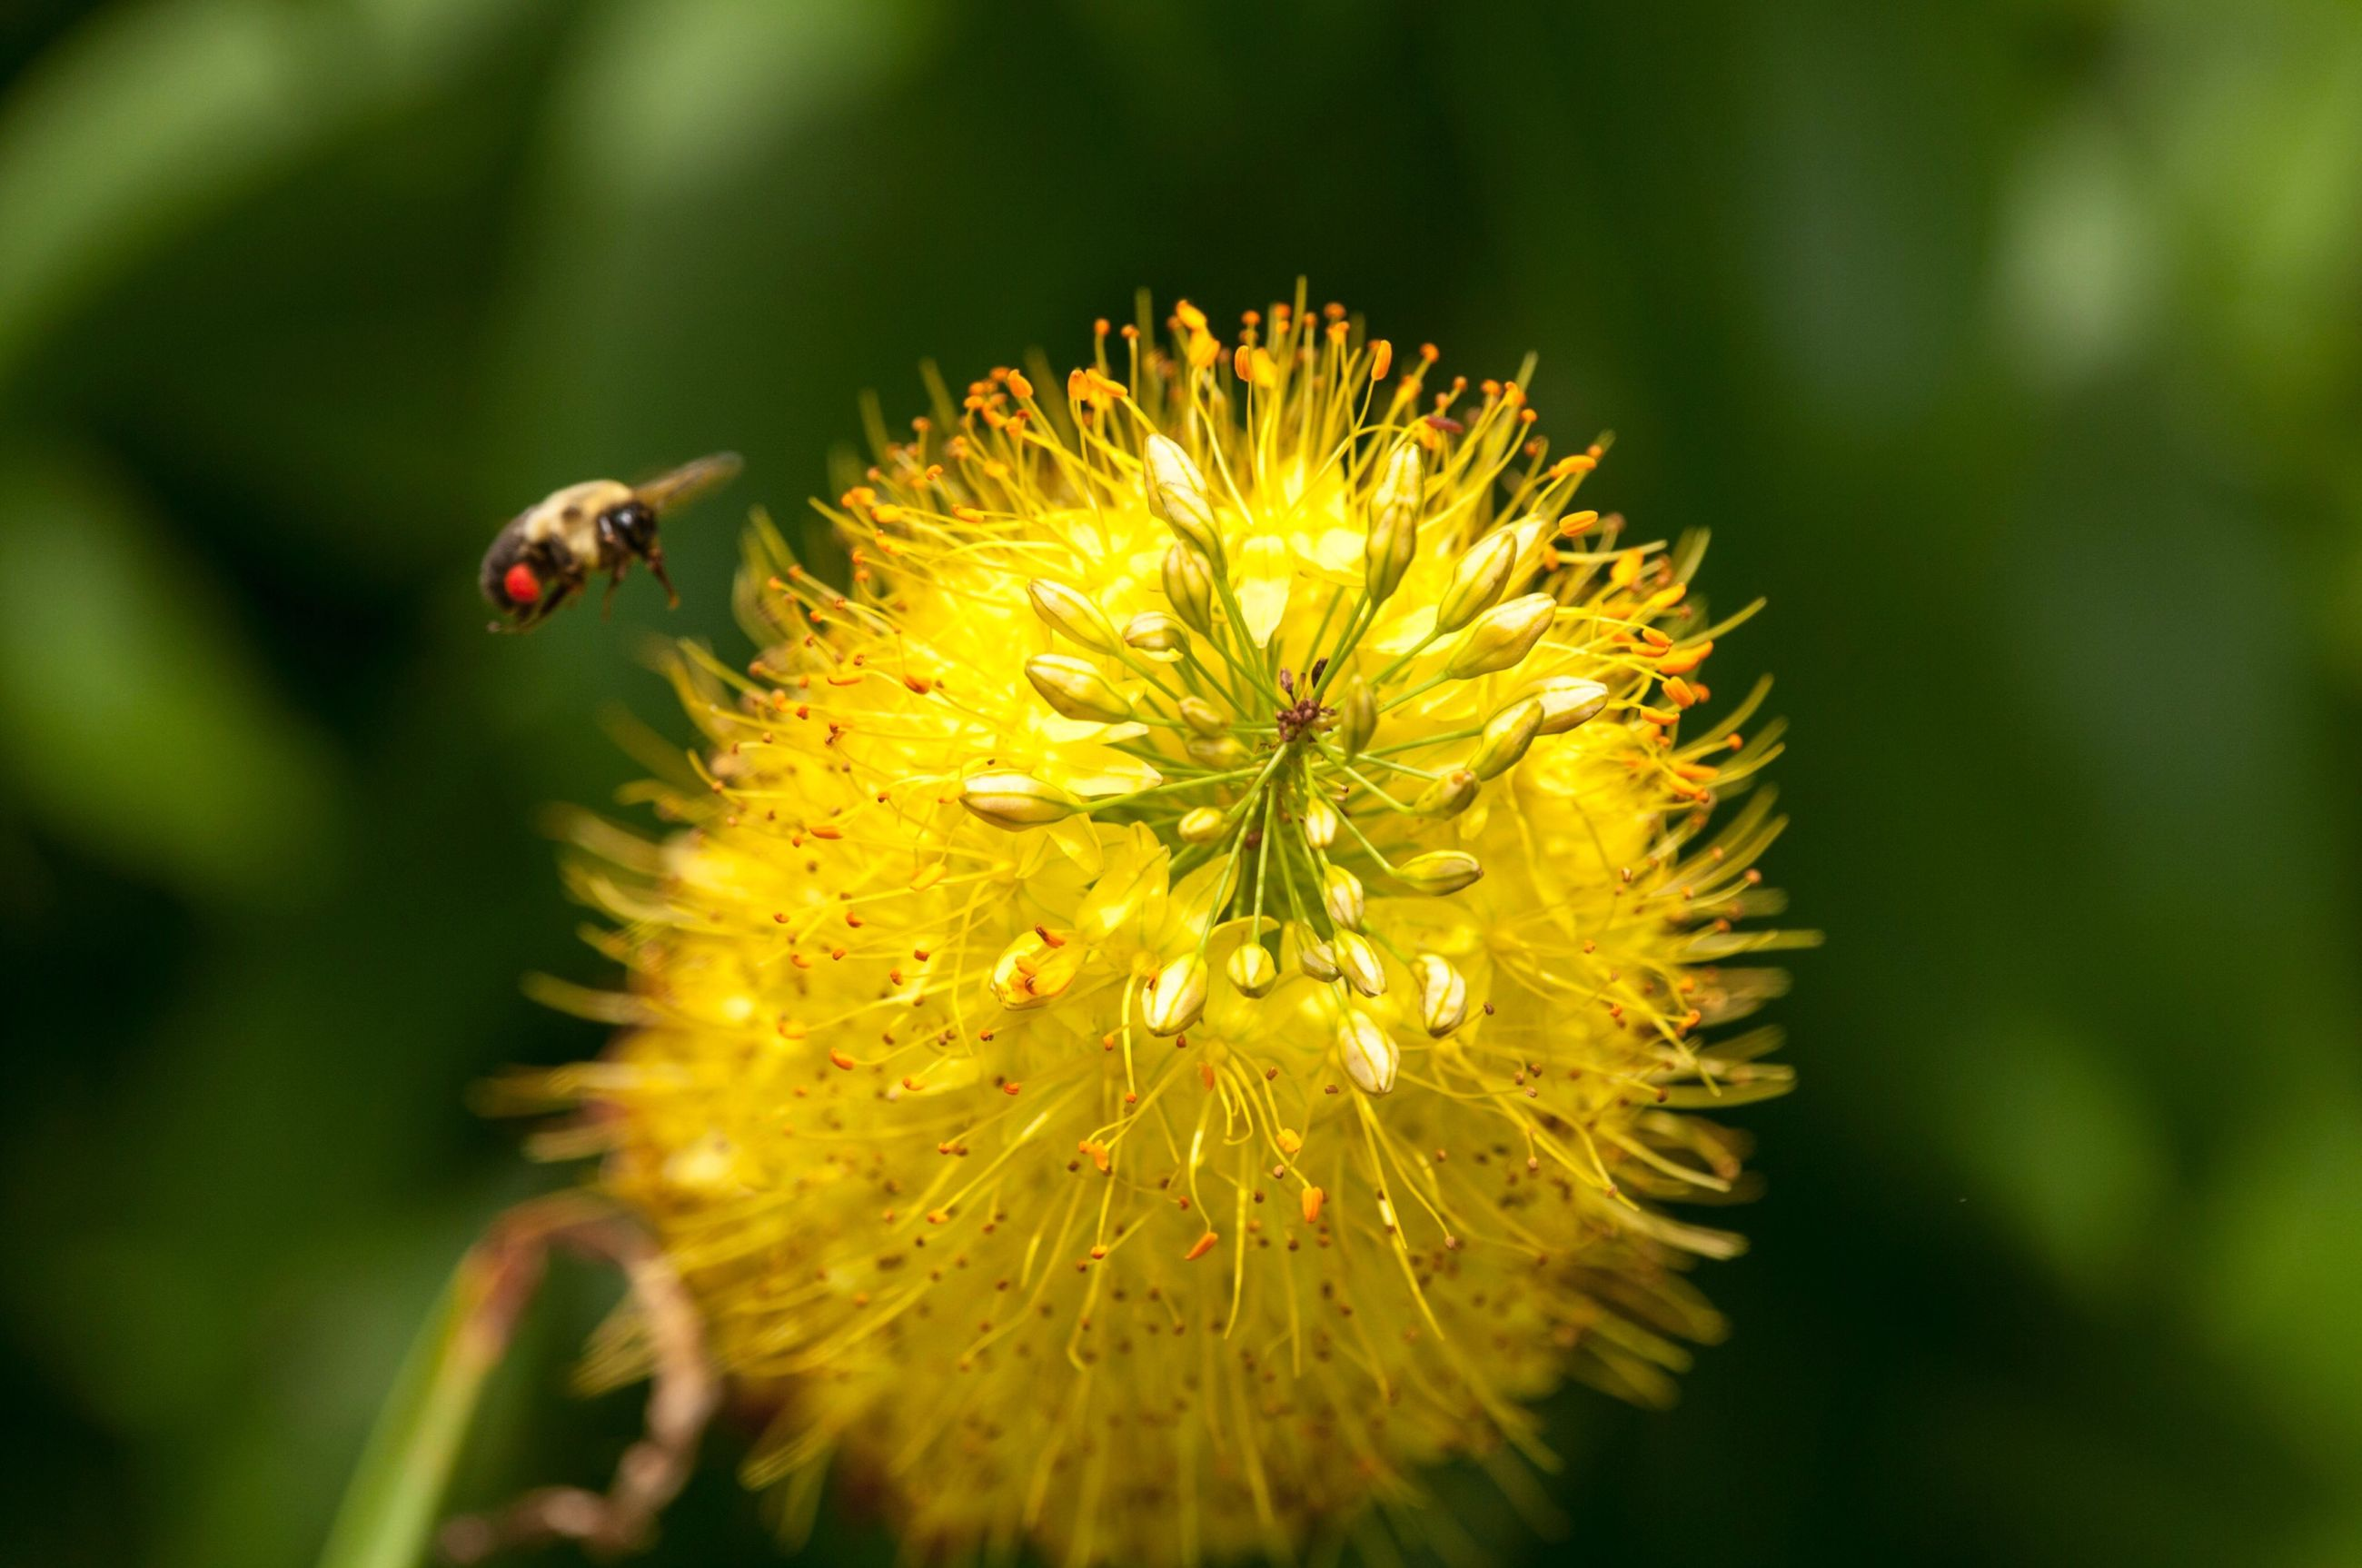 insect, flower, one animal, animals in the wild, animal themes, petal, nature, fragility, wildlife, beauty in nature, growth, yellow, animal wildlife, close-up, plant, no people, outdoors, freshness, day, flower head, bee, blooming, pollination, ladybug, buzzing